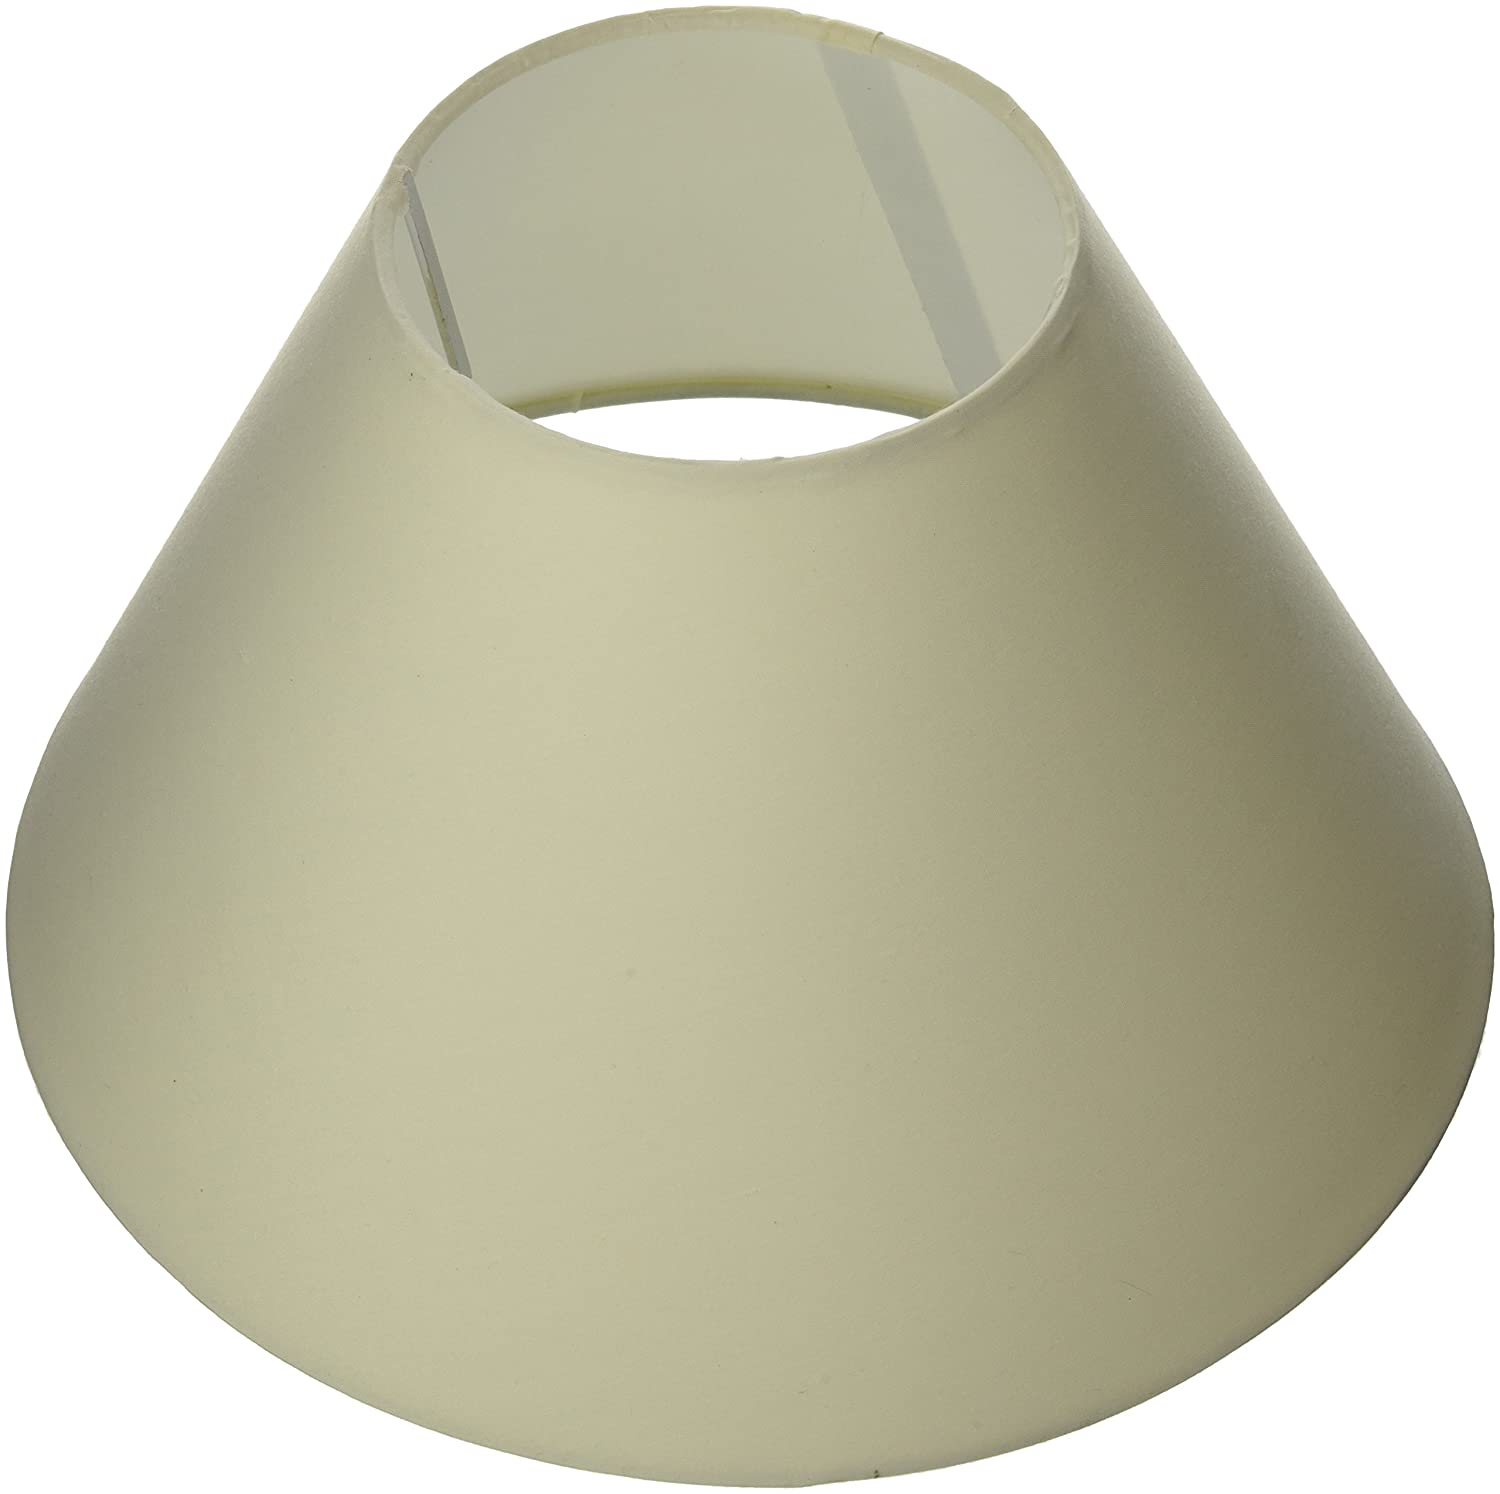 Oaks Lighting Coolie Abat-jour en coton Crè me S501/12 CREAM